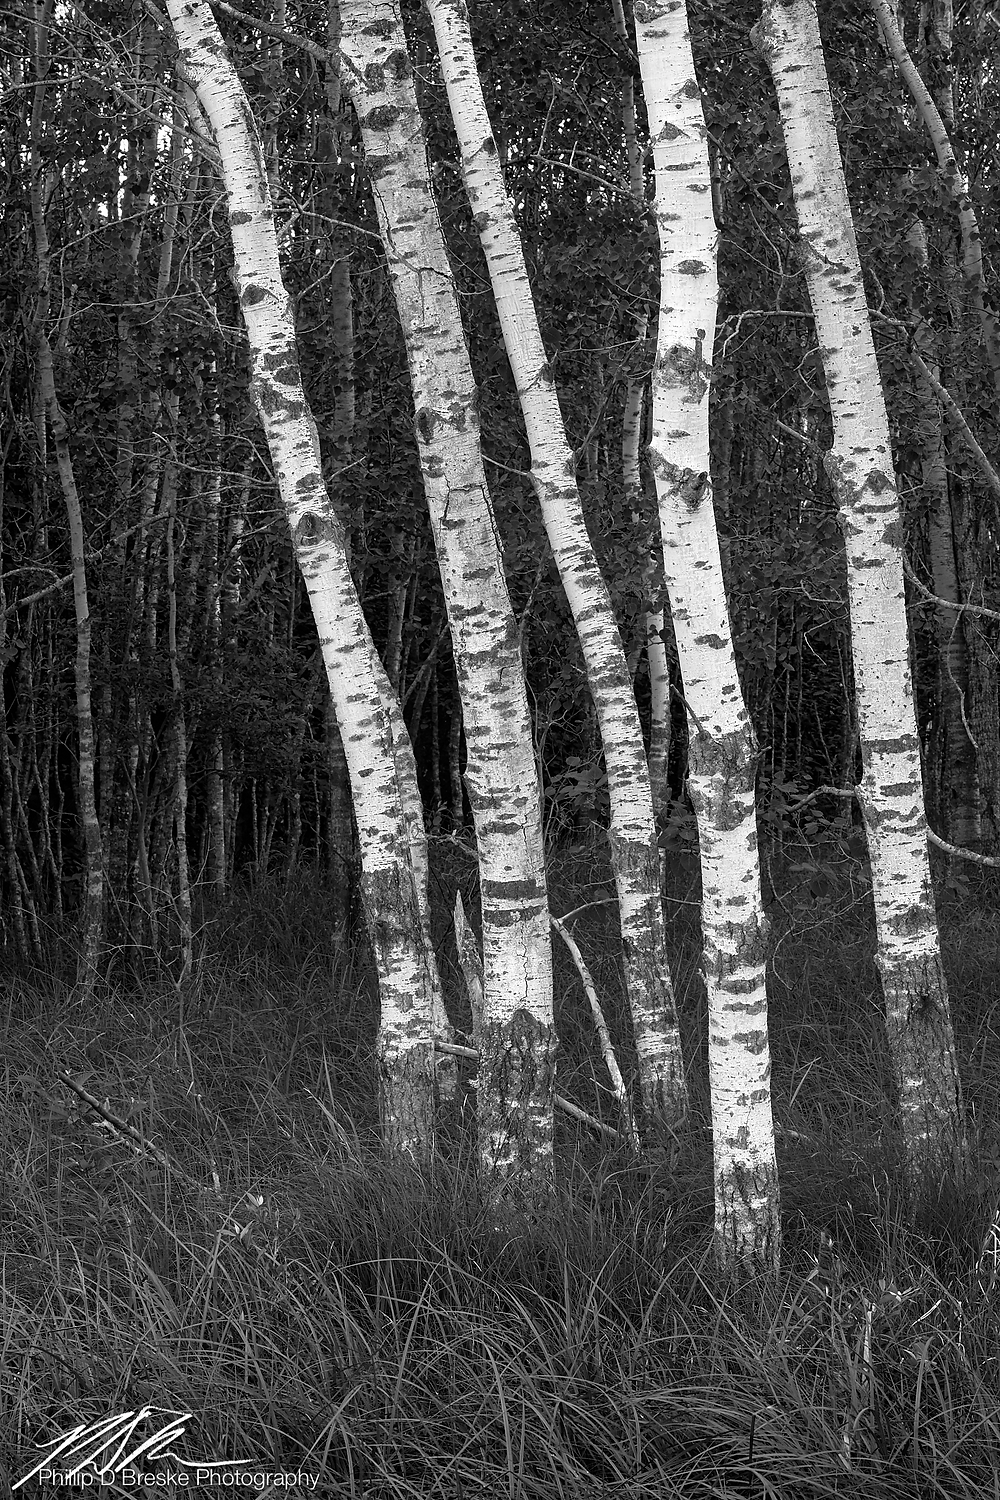 Birch trees in Badoura State Forest, MN